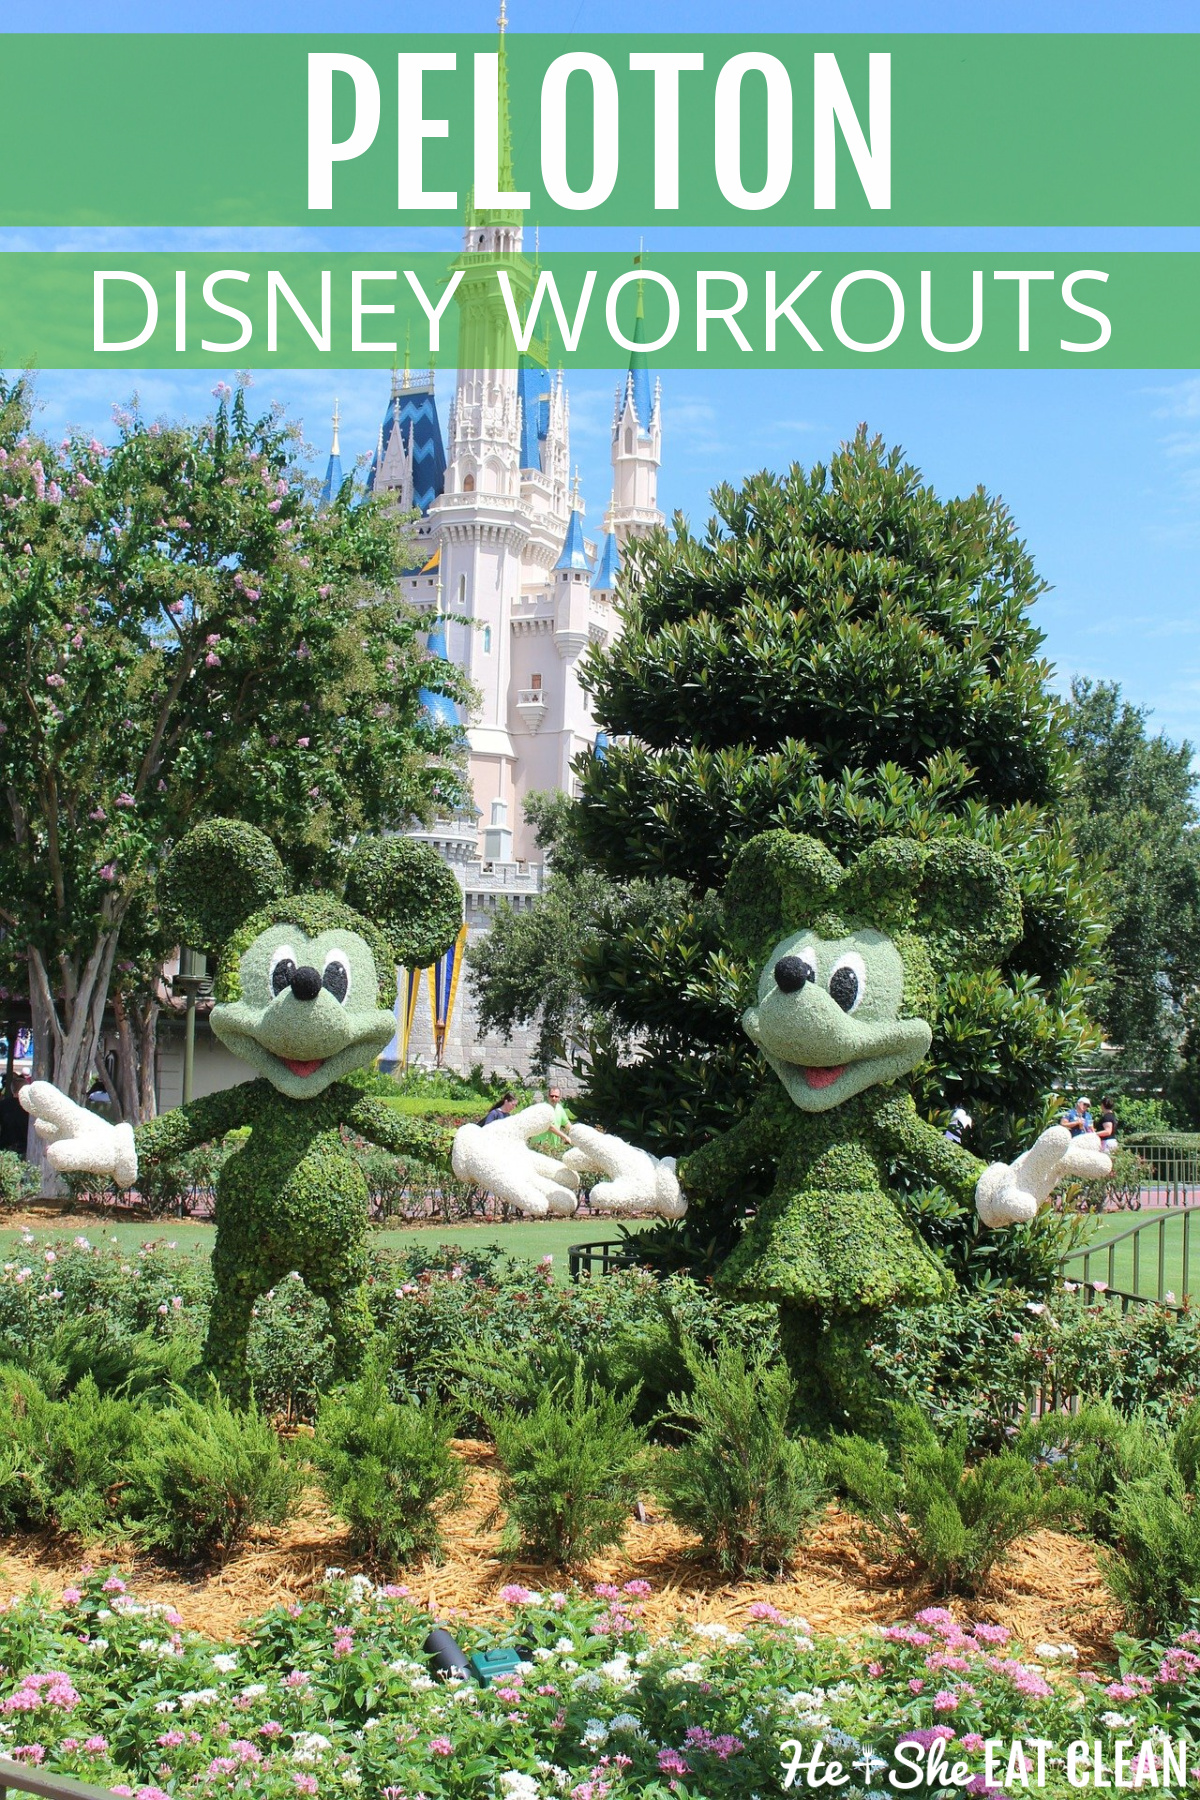 Disney Castle with Hedges cut out to look like Minnie and Mickey in front of the castle. Text reads Peloton Disney Workouts